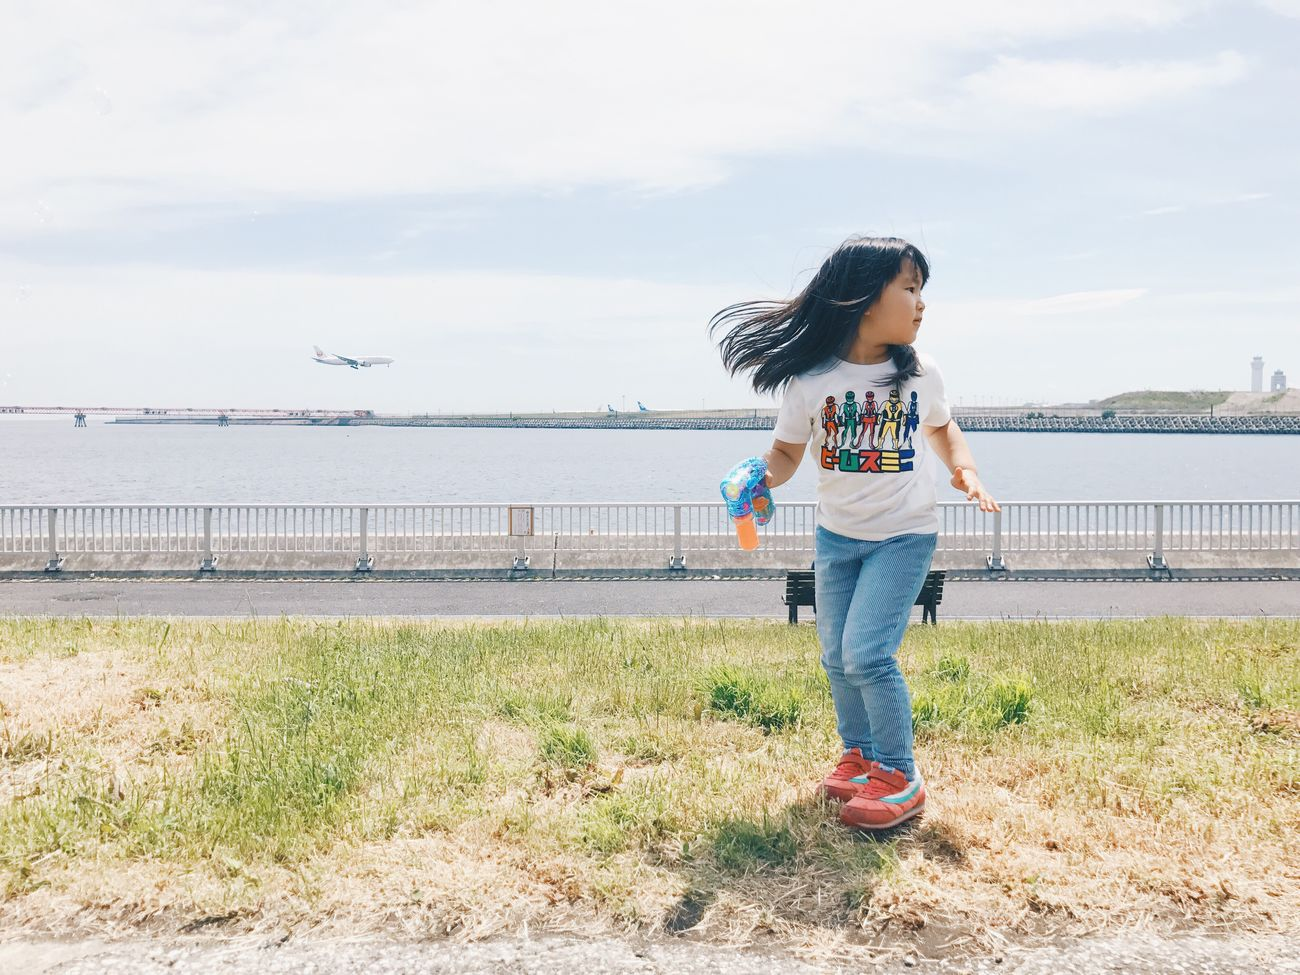 Vscogood Vscocam VSCO Casual Clothing Real People Full Length Leisure Activity One Person Sky Day Standing Outdoors Cloud - Sky Lifestyles Nature Sea Water Young Women Childhood Grass Young Adult Beauty In Nature People Hello My Baby Airplane